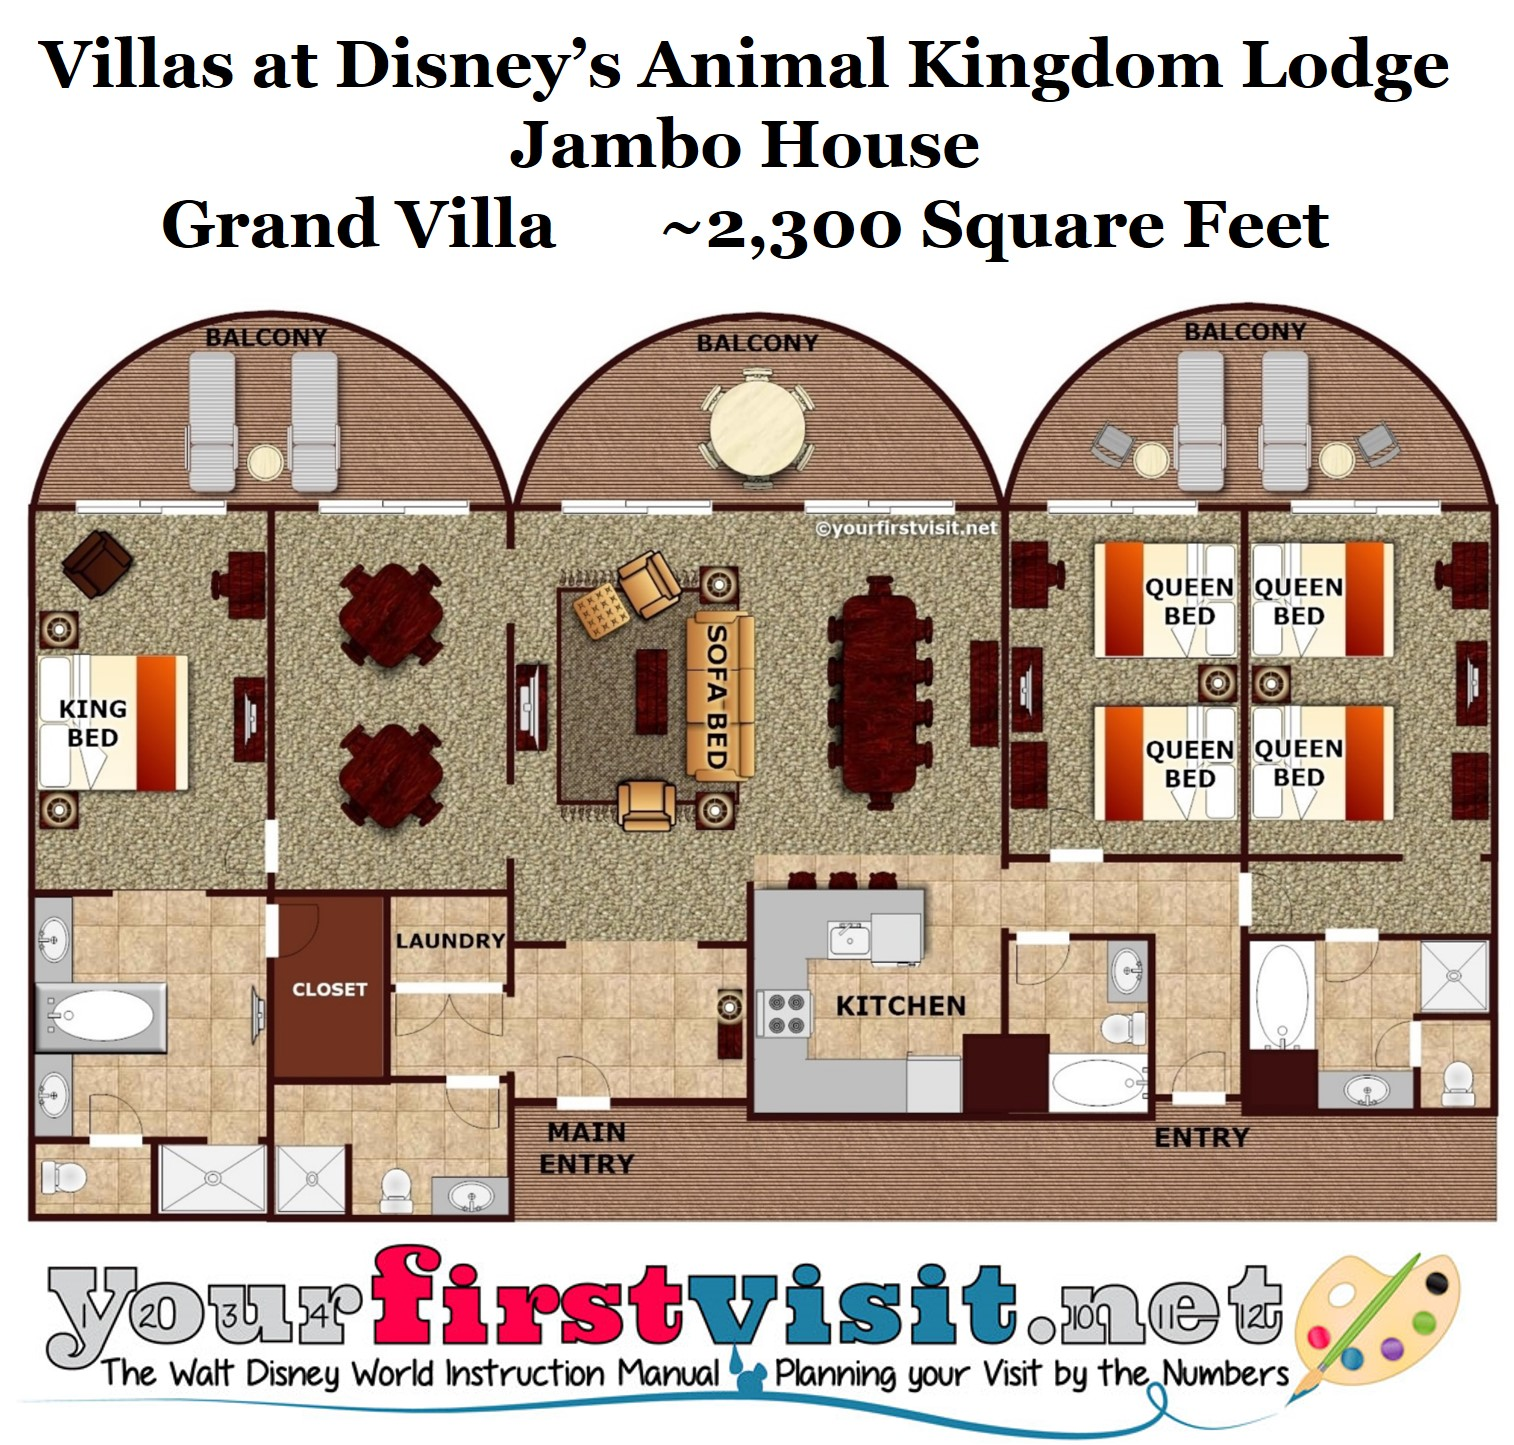 Accommodations and theming at disney 39 s animal kingdom - 3 bedroom grand villa disney animal kingdom ...